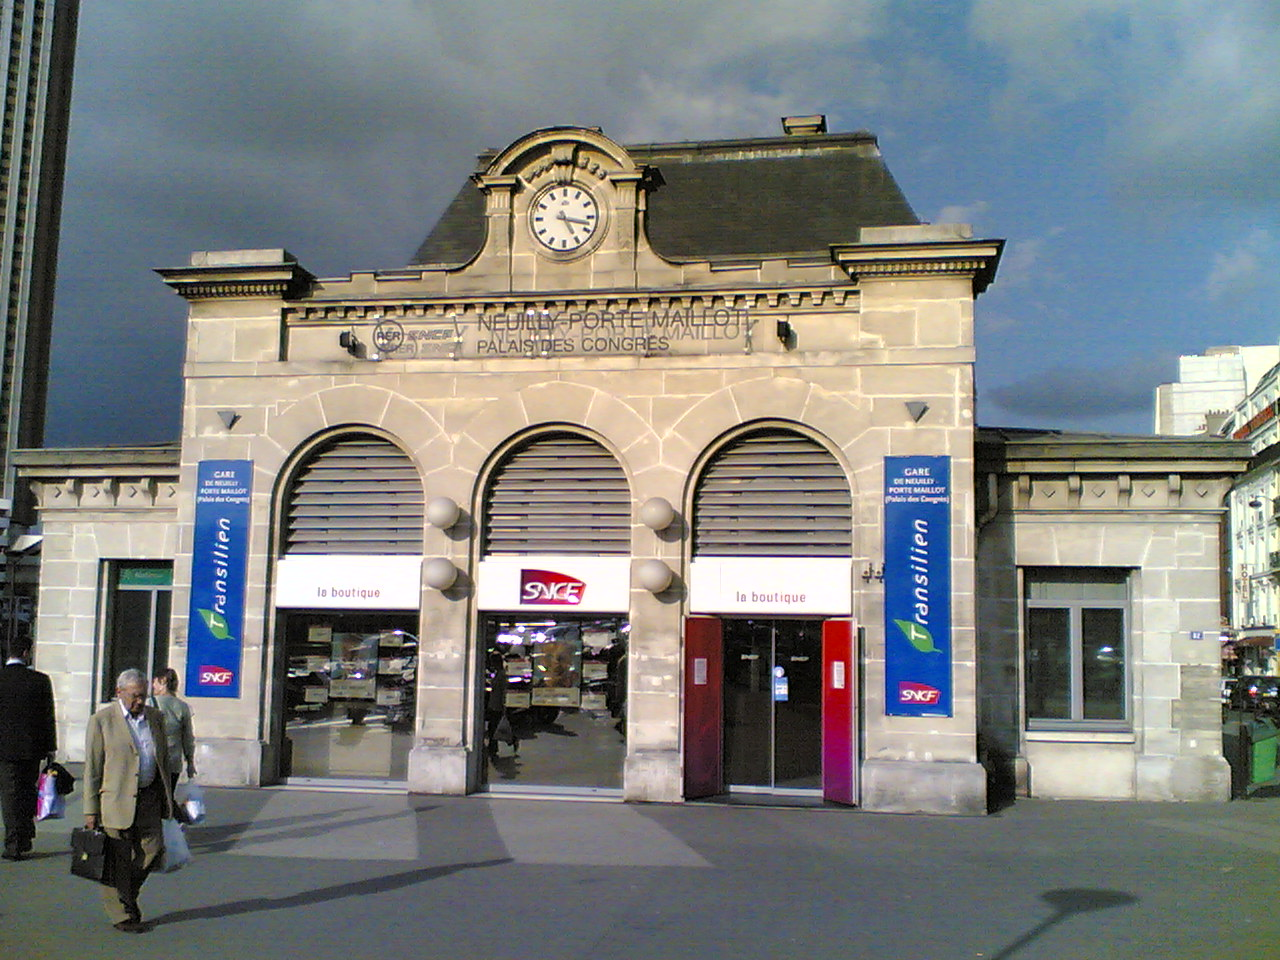 Le Meilleur File Neuilly Porte Maillot Ext Jpg Wikimedia Commons Ce Mois Ci